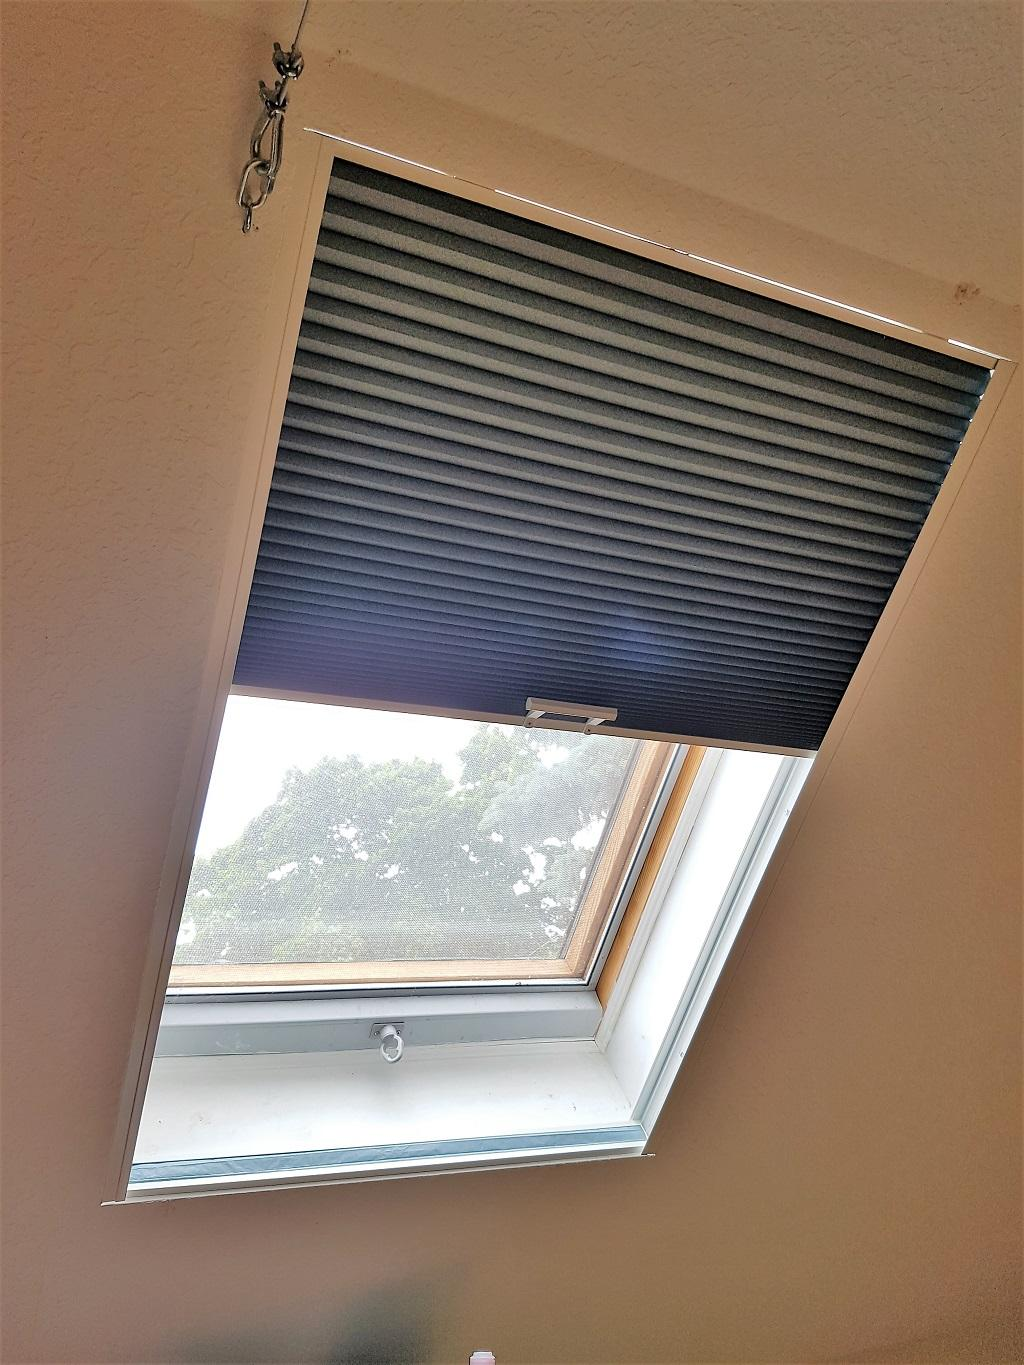 Budget Blinds à Waterloo: This client needed a darkening solution for a space that is sometimes used for sleeping. The cellular shade shown can be operated by hand if the shade can be reached or a telescoping pole can be included.